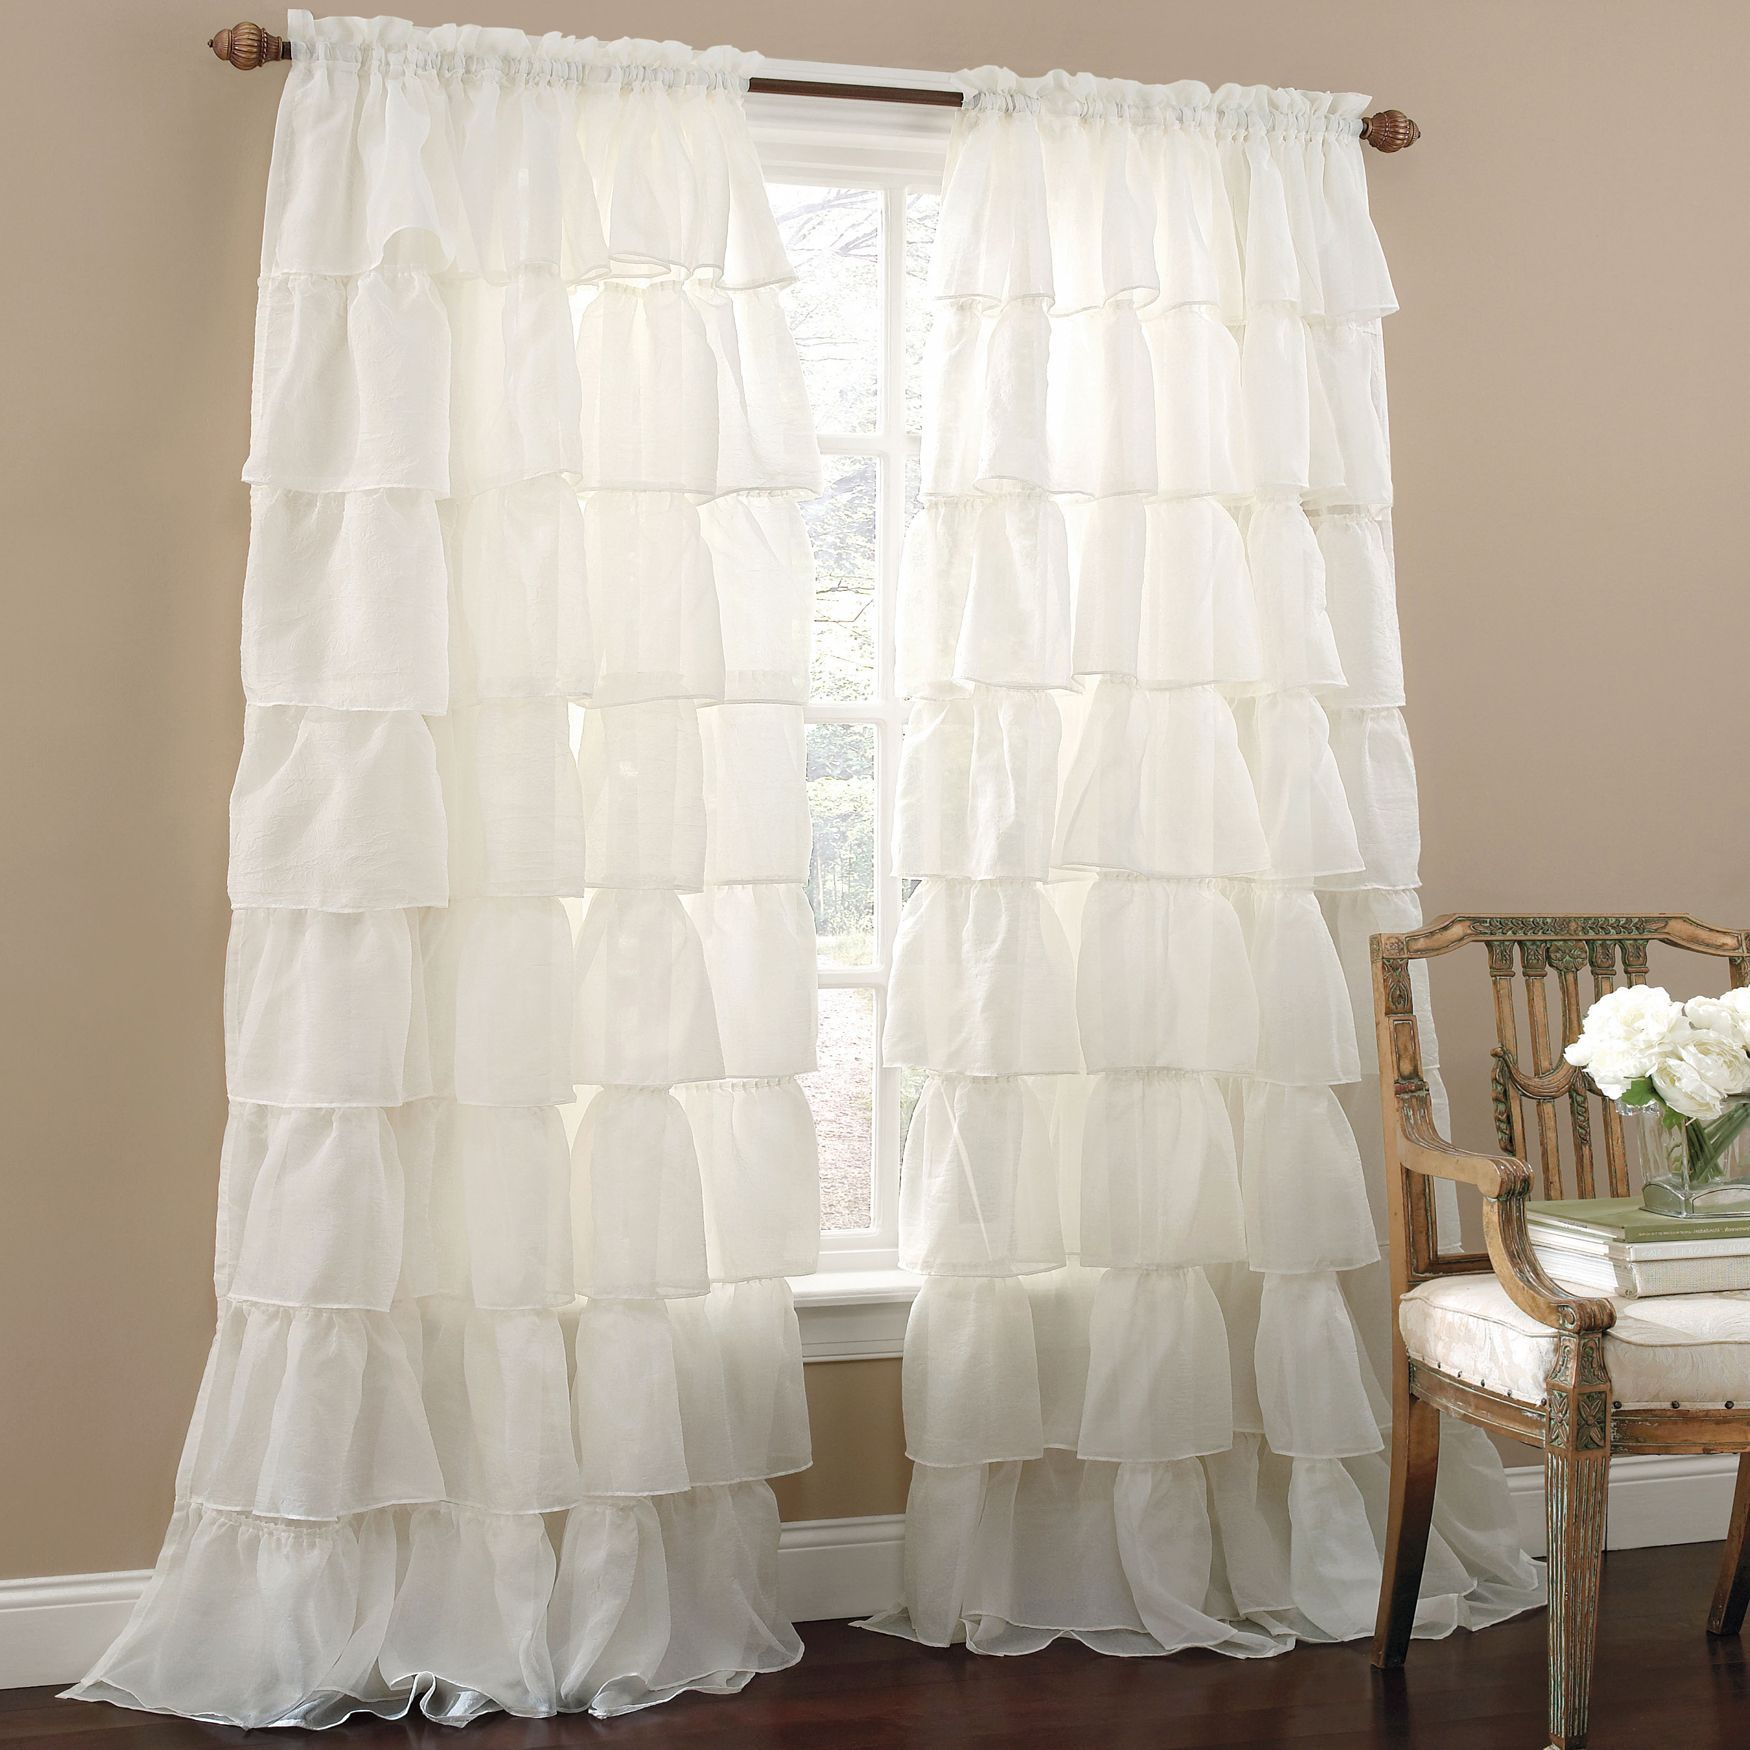 Gypsy Ruffled Voile Rod Pocket Panel | Curtains & Drapes In Sheer Voile Ruffled Tier Window Curtain Panels (View 13 of 20)